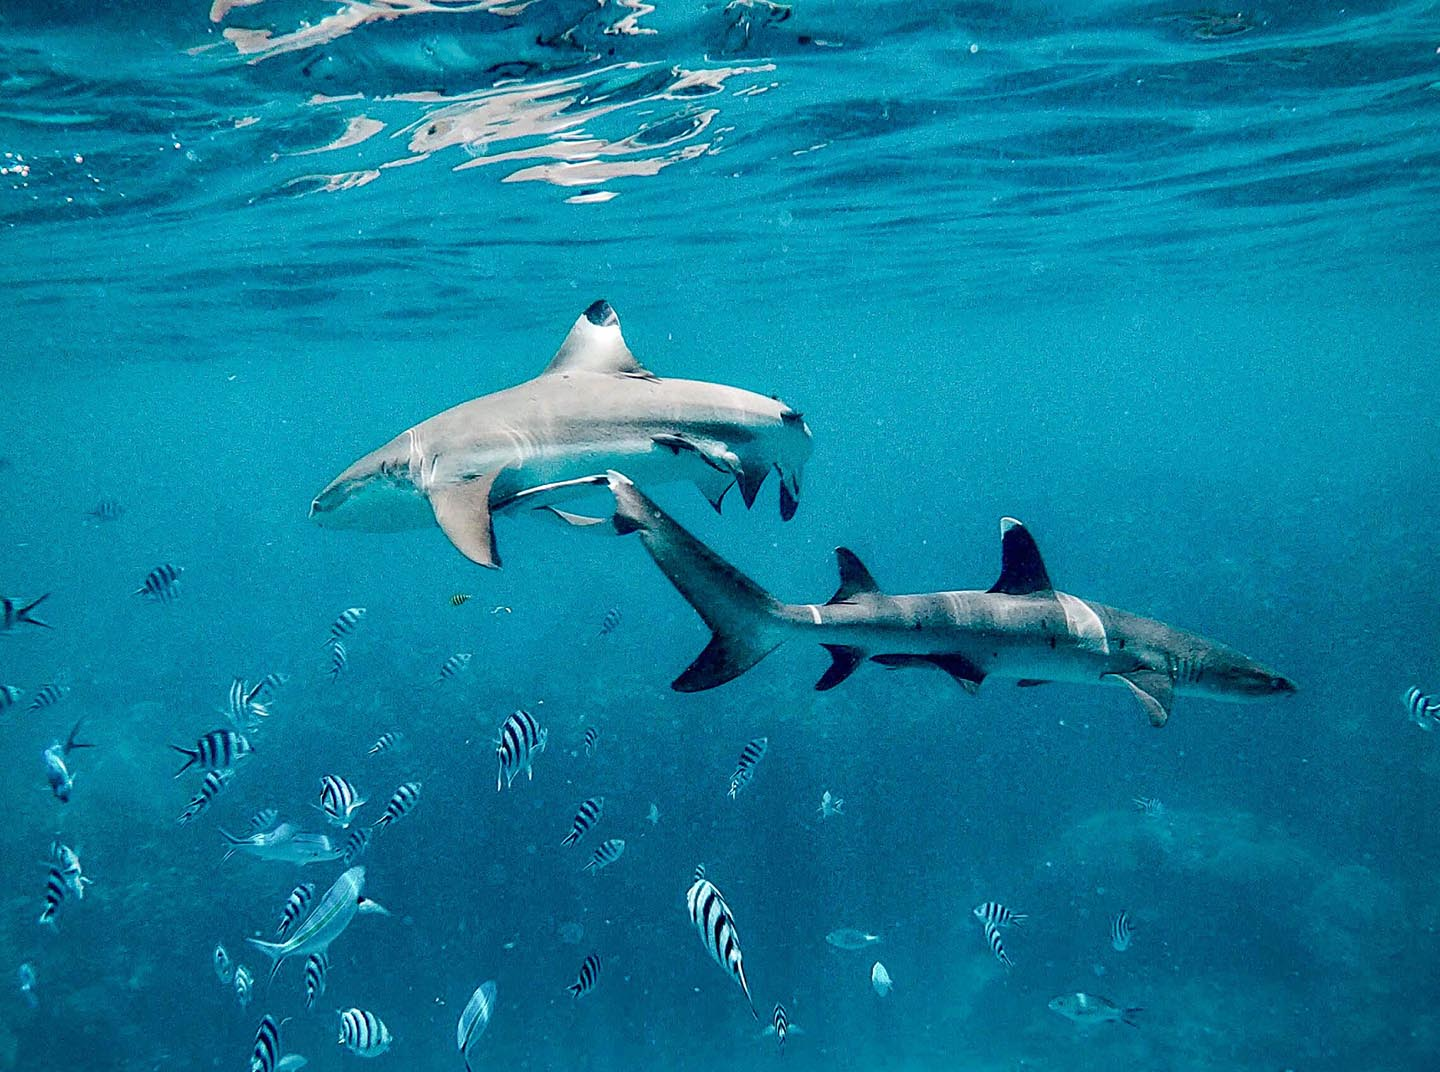 Diving with sharks at Barefoot Kuata | Image © ExpatAlli.com